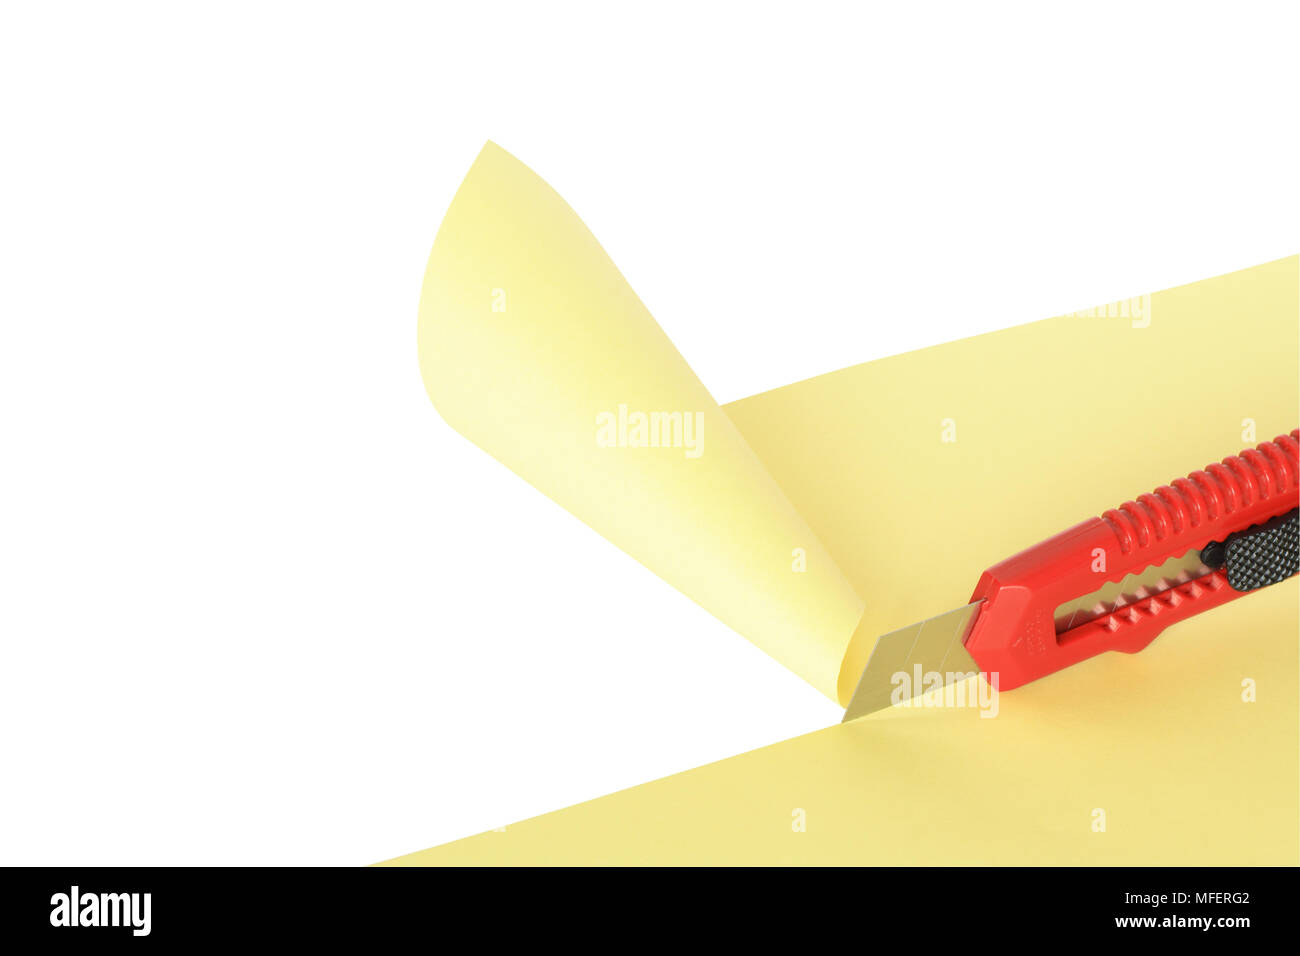 Red knife cutting yellow paper sheet. Isolated on white with clipping path - Stock Image